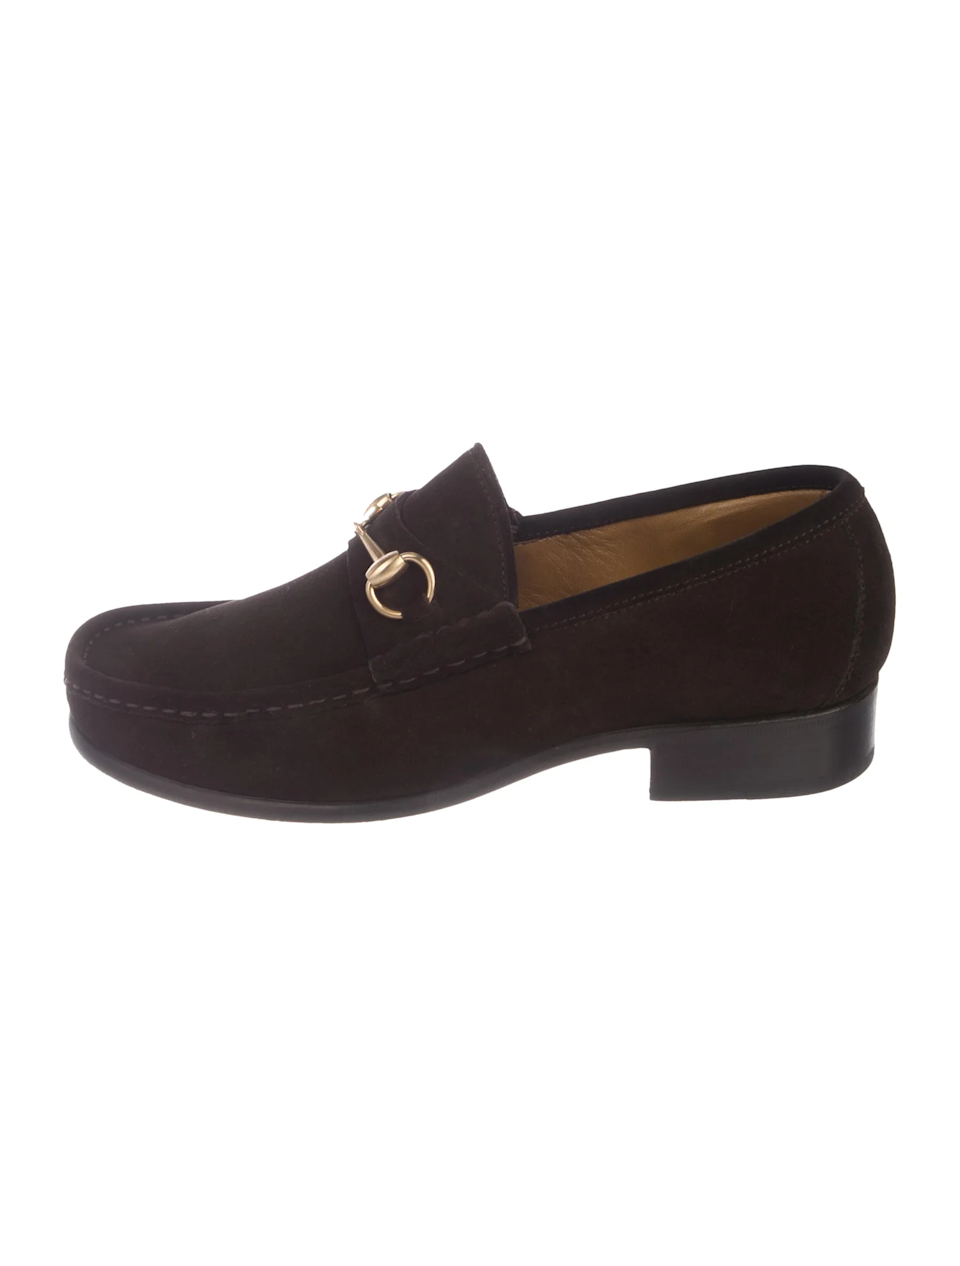 """I'd been saving up months for these and I got a coupon for some dollars off my purchase so it seemed like the perfect time to take them off my wishlist and make them mine!"" <br> <br> <strong>Gucci</strong> Suede Horsebit Loafers, $, available at <a href=""https://go.skimresources.com/?id=30283X879131&url=https%3A%2F%2Fwww.therealreal.com%2Fproducts%2Fmen%2Fshoes%2Floafers%2Fgucci-suede-horsebit-loafers-792cb%3Fposition%3D75%23%21"" rel=""nofollow noopener"" target=""_blank"" data-ylk=""slk:The RealReal"" class=""link rapid-noclick-resp"">The RealReal</a>"